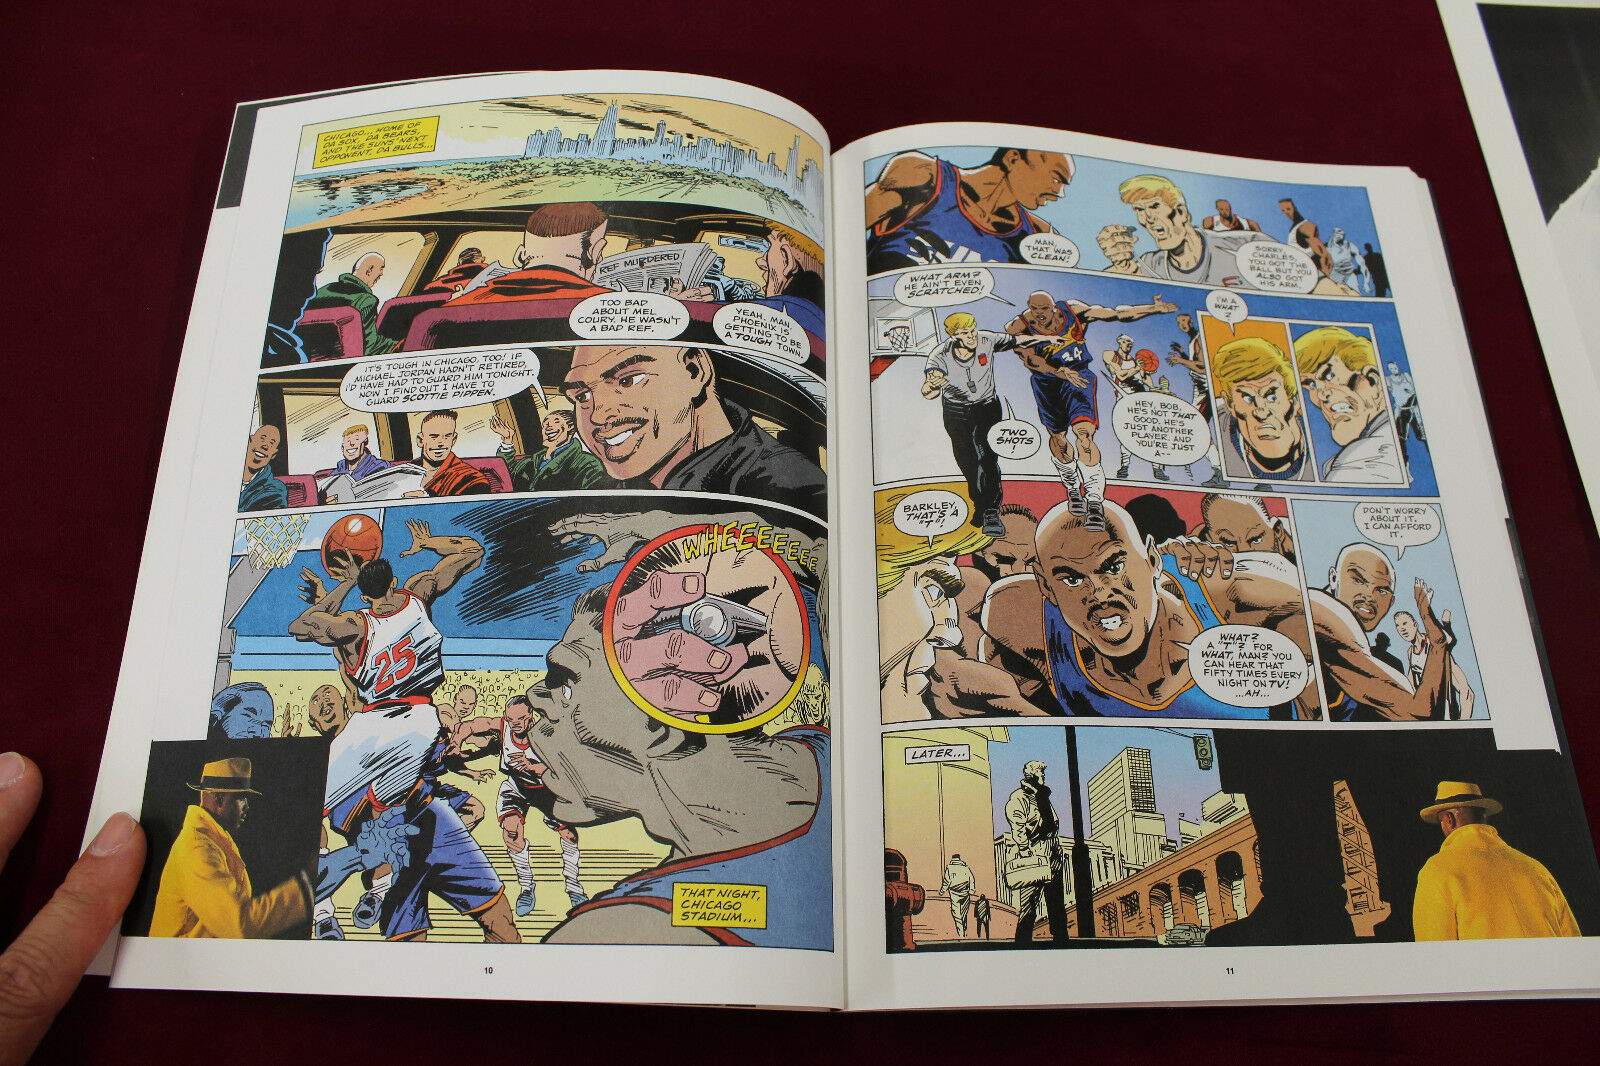 Charles Barkley SIGNED Referee Murders Comic Book 32/99 W Stamp Sheet 76ers